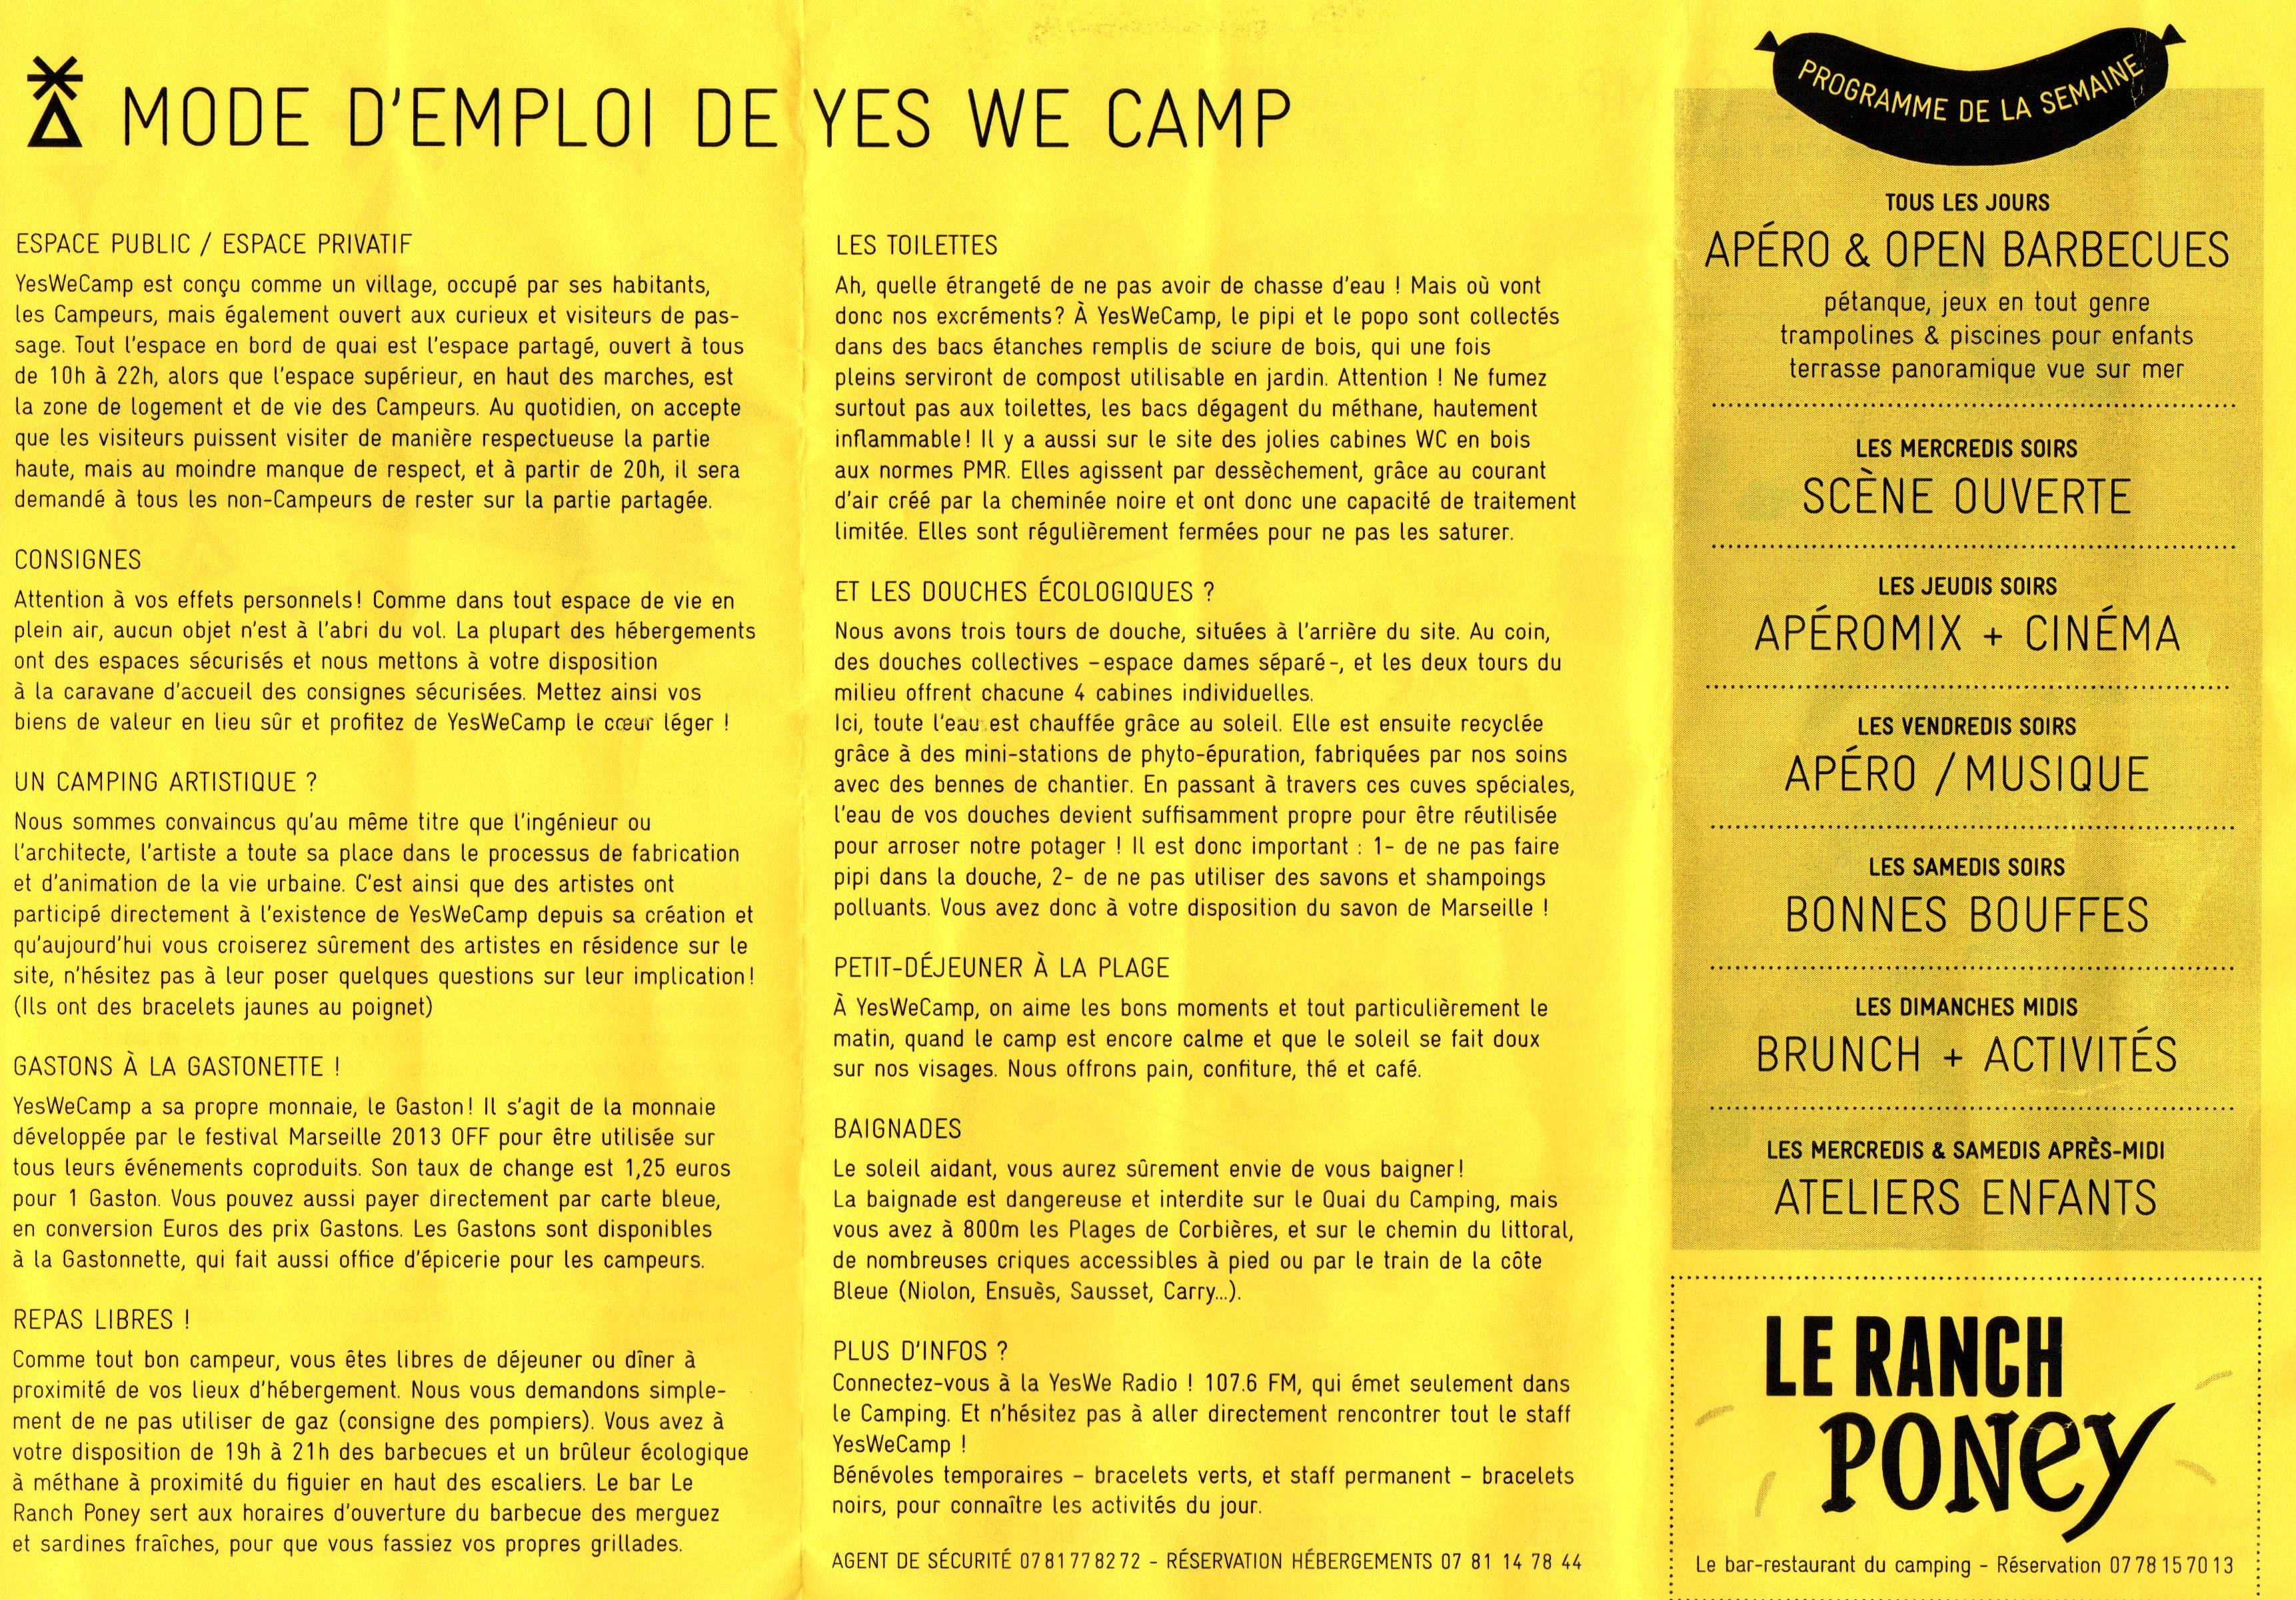 Yes we mode d'emploi